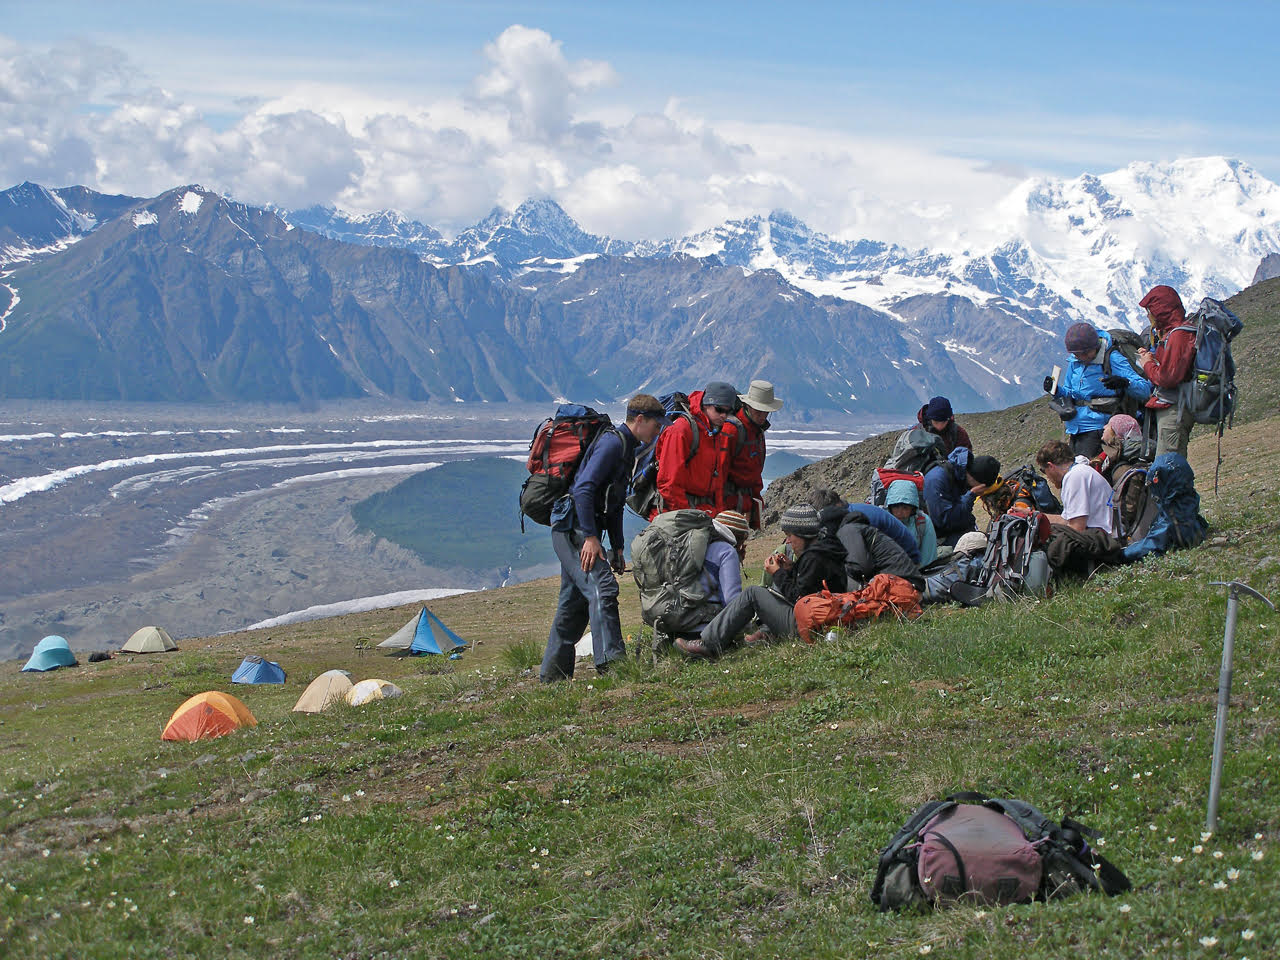 Students learn alpine plant ecology at a high mountain campsite in the back-country of the park.